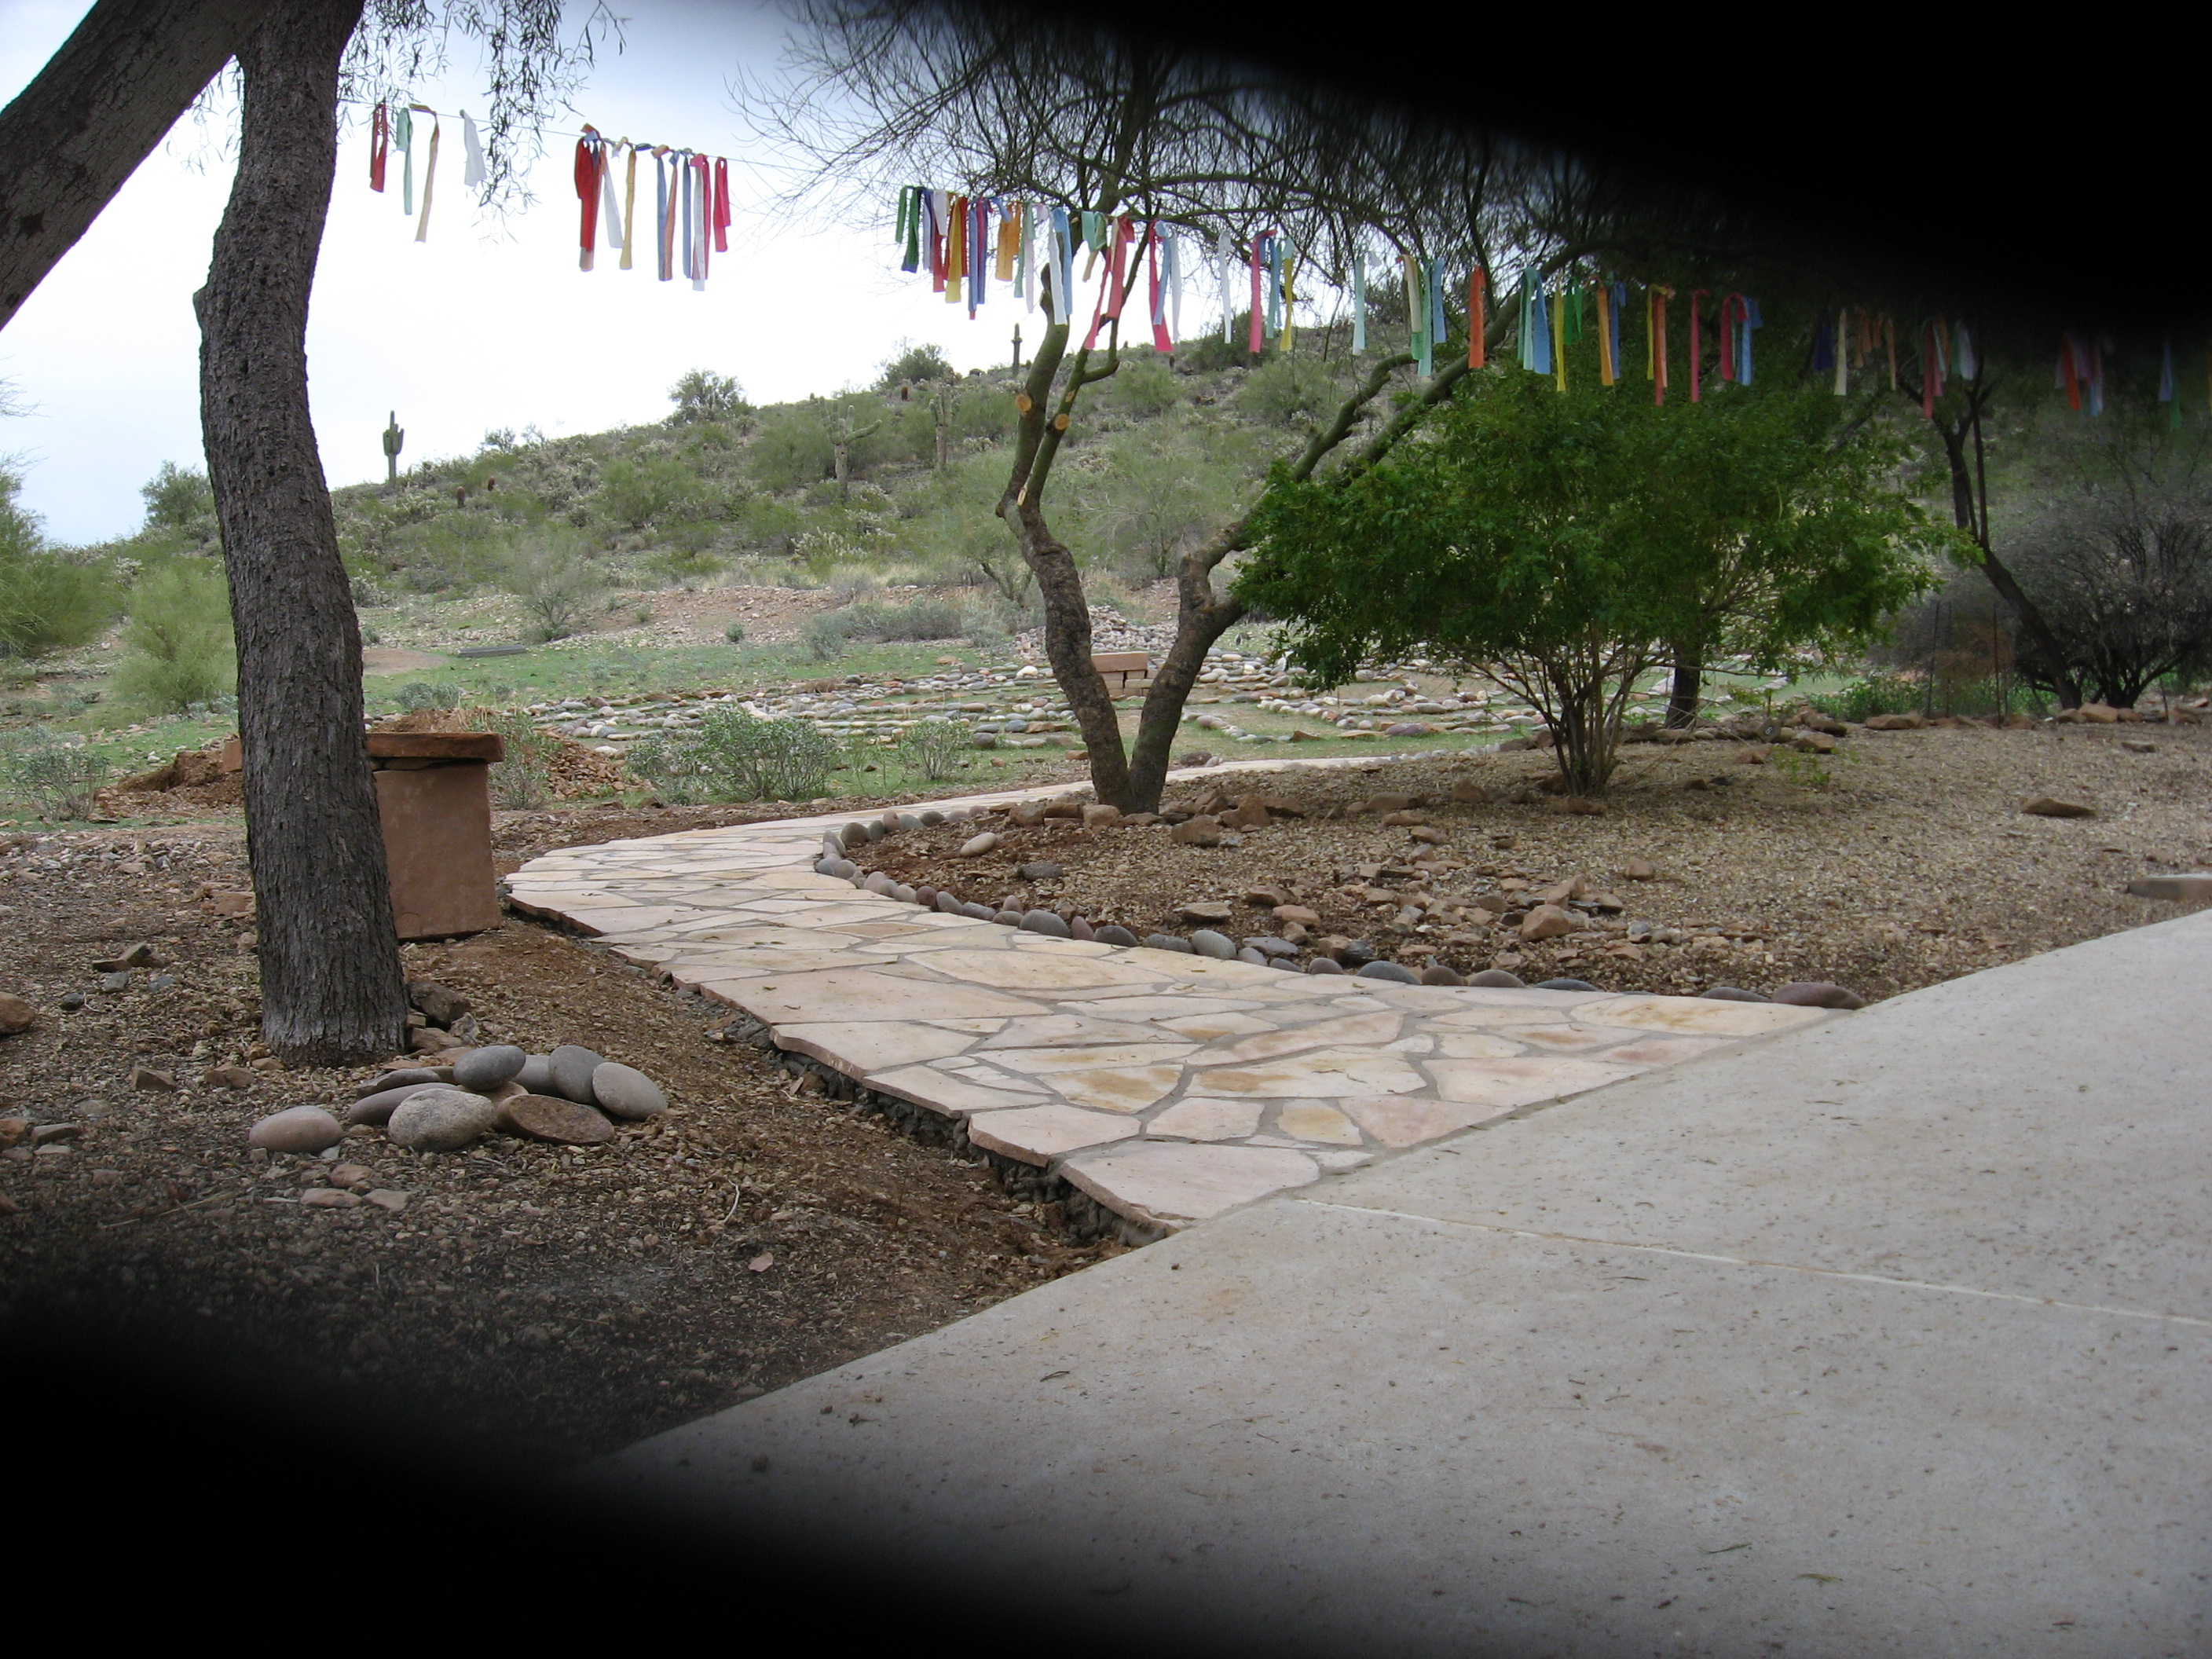 The Labyrinth and Prayer Flags